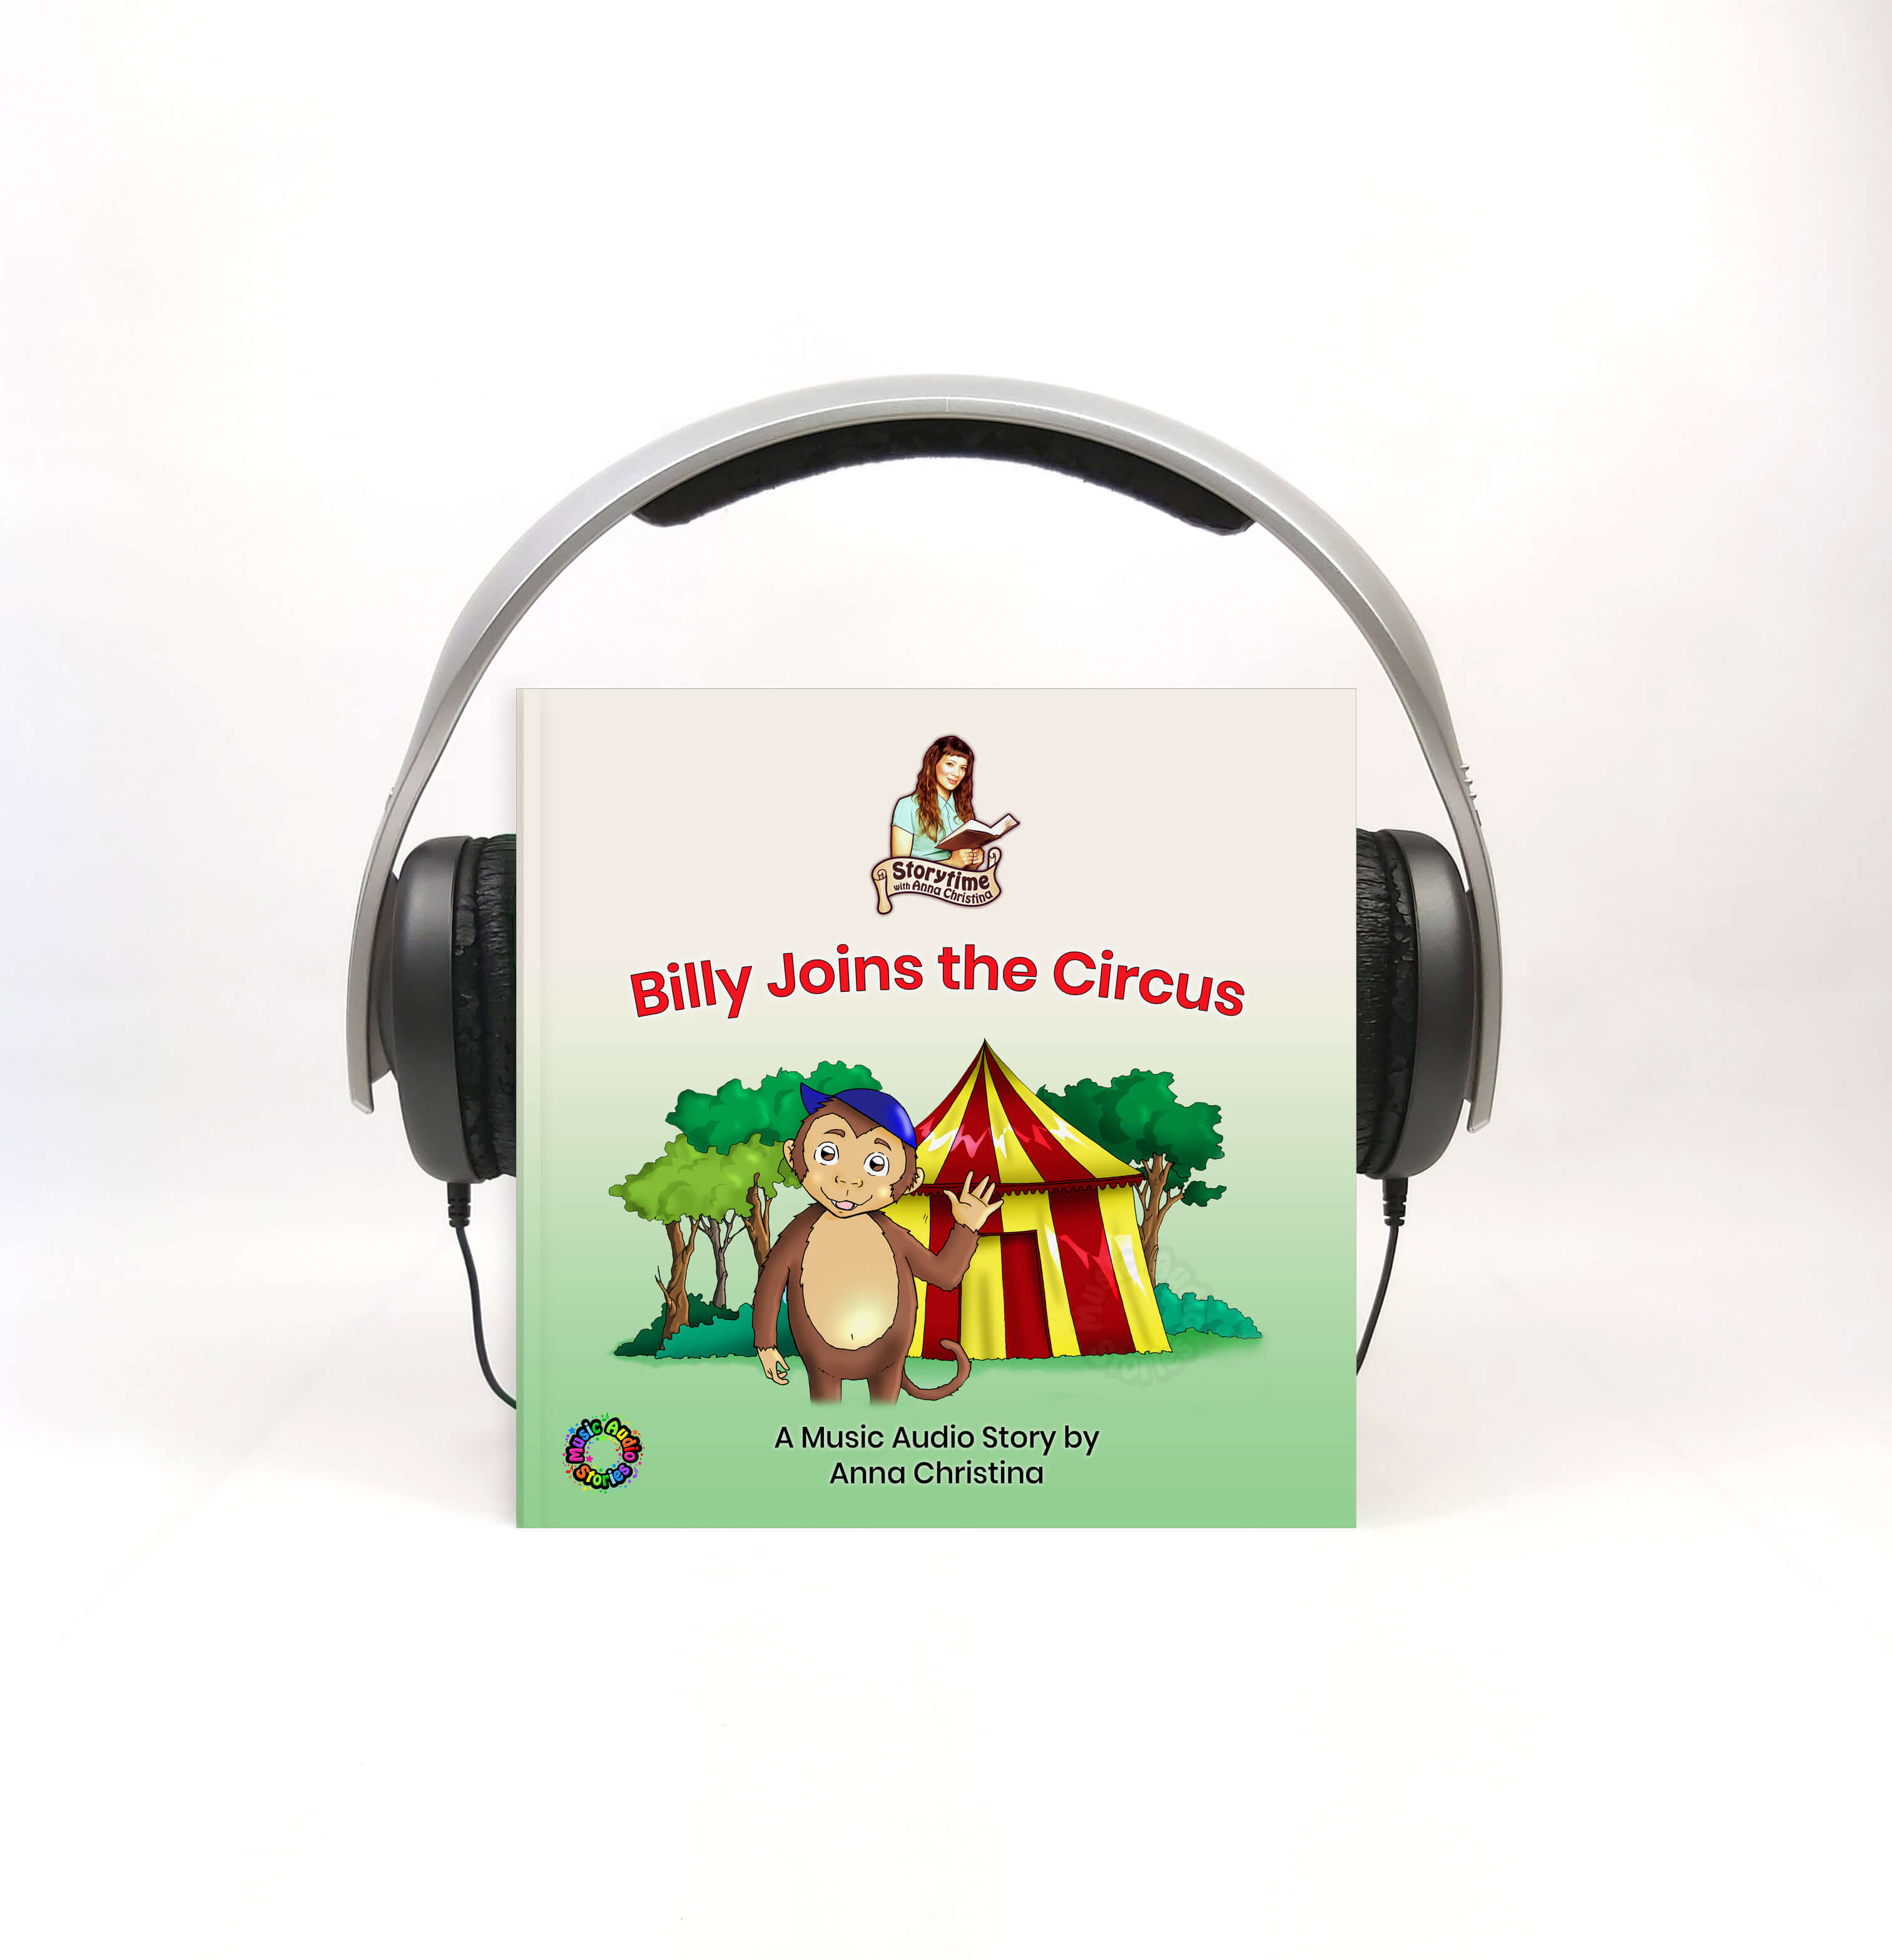 Music Audio Stories - Billy Audiobook image